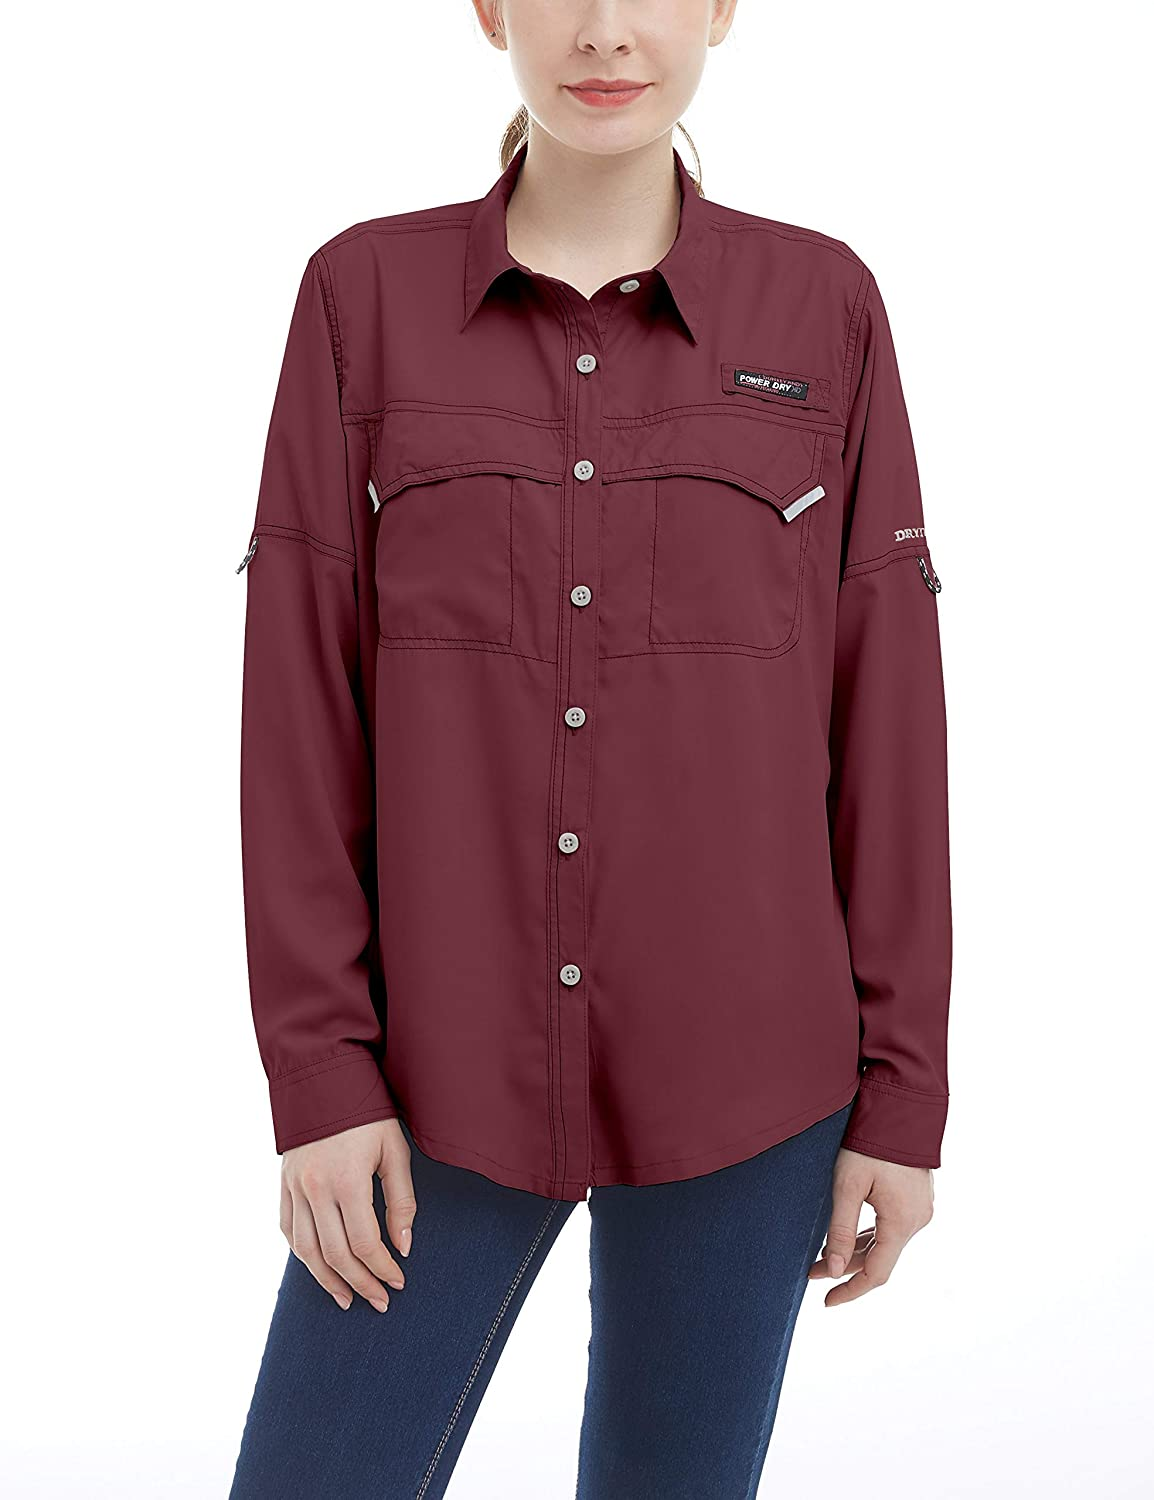 Little Donkey Andy Women's UPF 50+ UV Protection Shirt, Long Sleeve Fishing Shirt, Breathable and Fast Dry